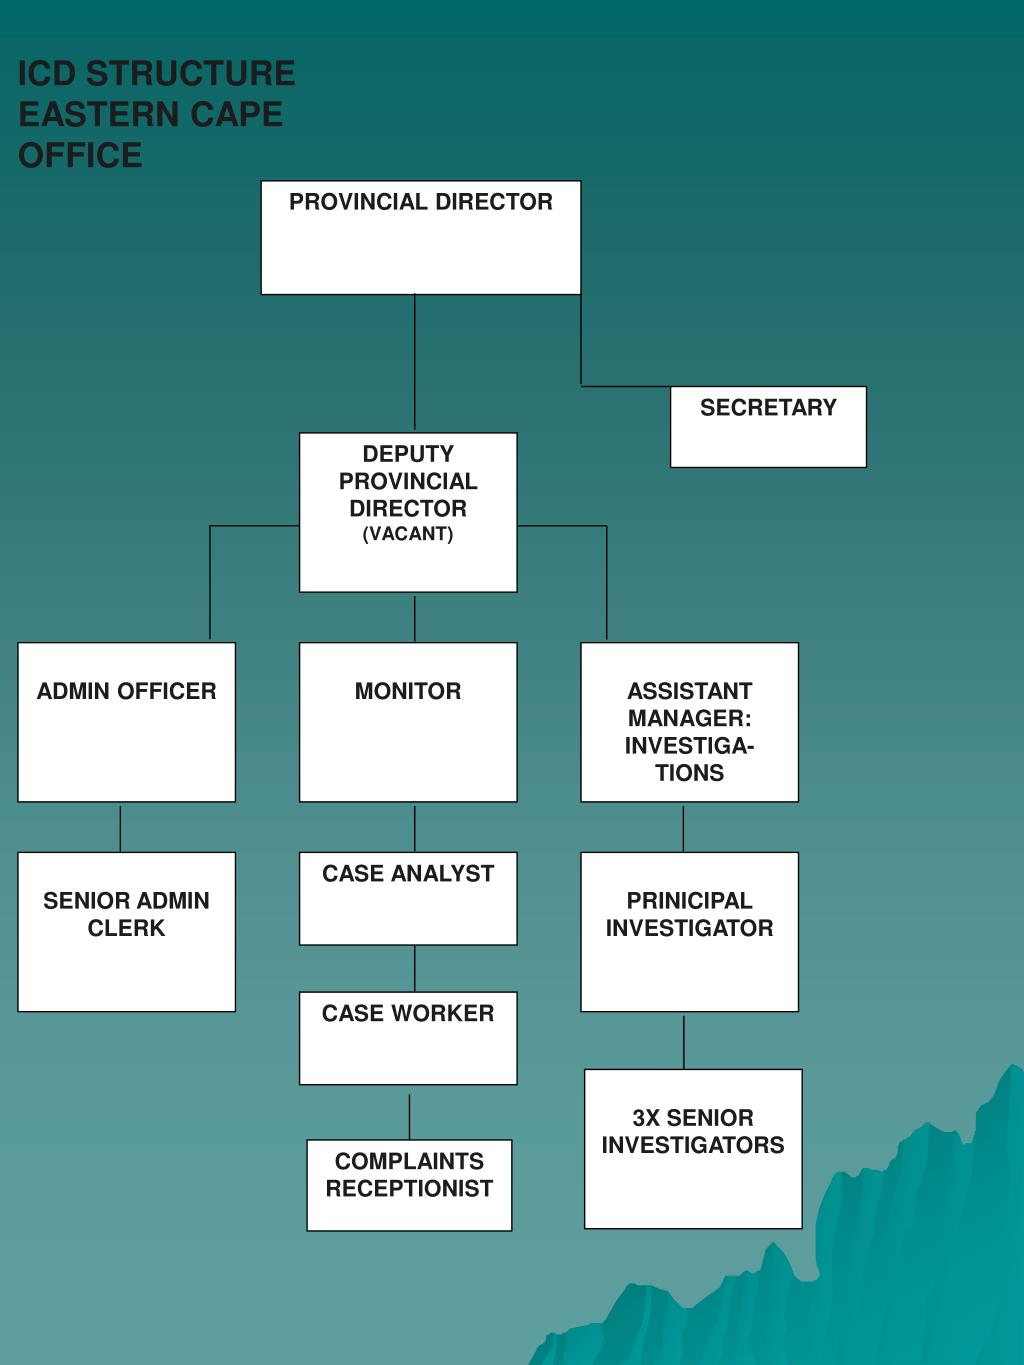 ICD STRUCTURE